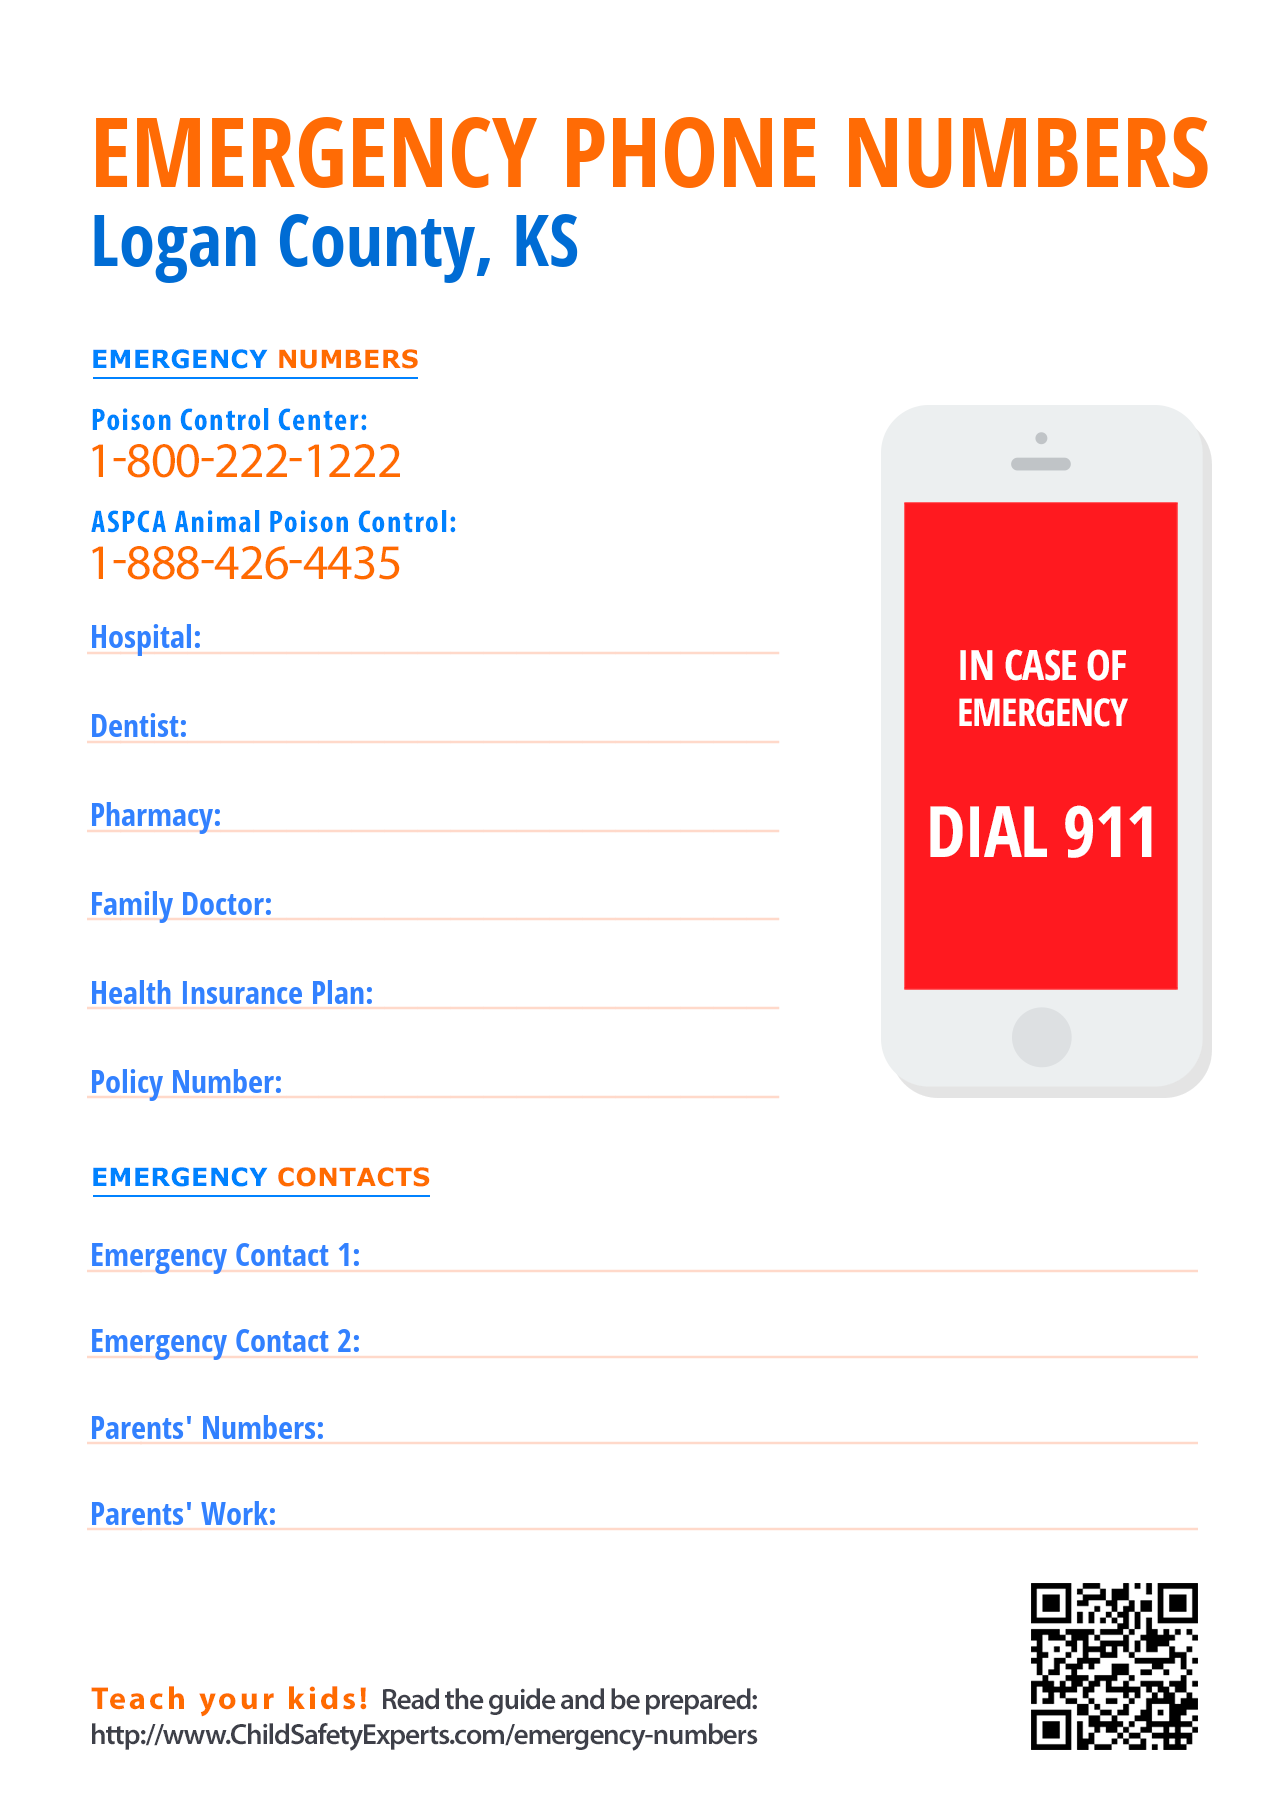 Important emergency phone numbers in Logan County, Kansas